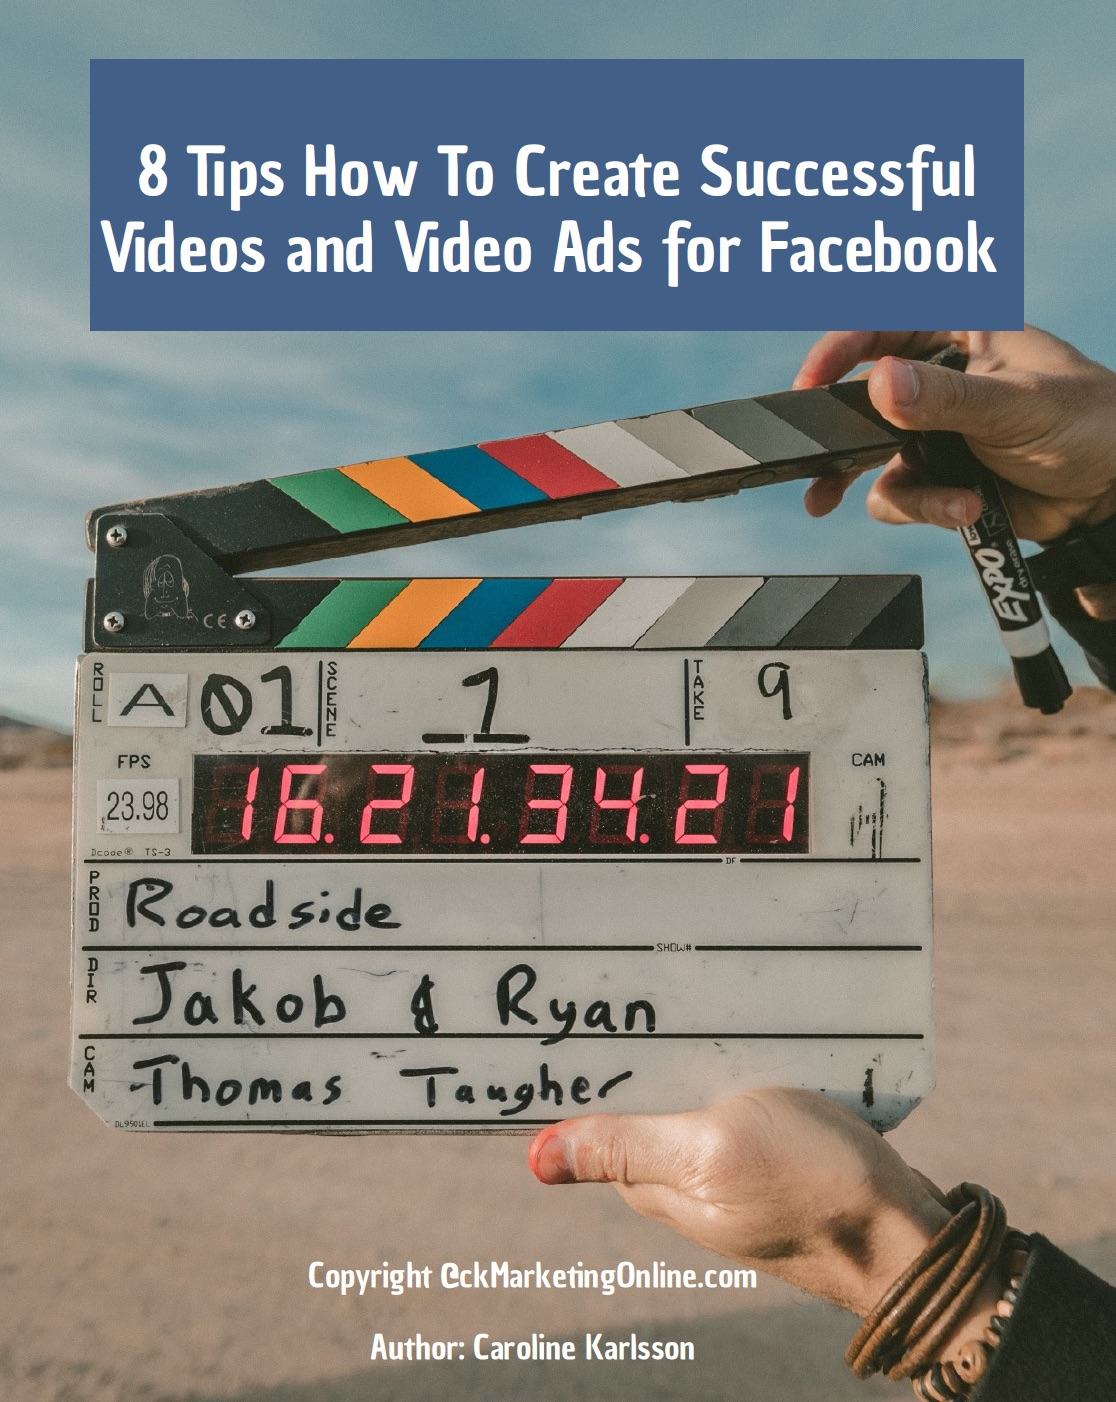 8 Tips How To Create Successful Videos and Video Ads For Facebook